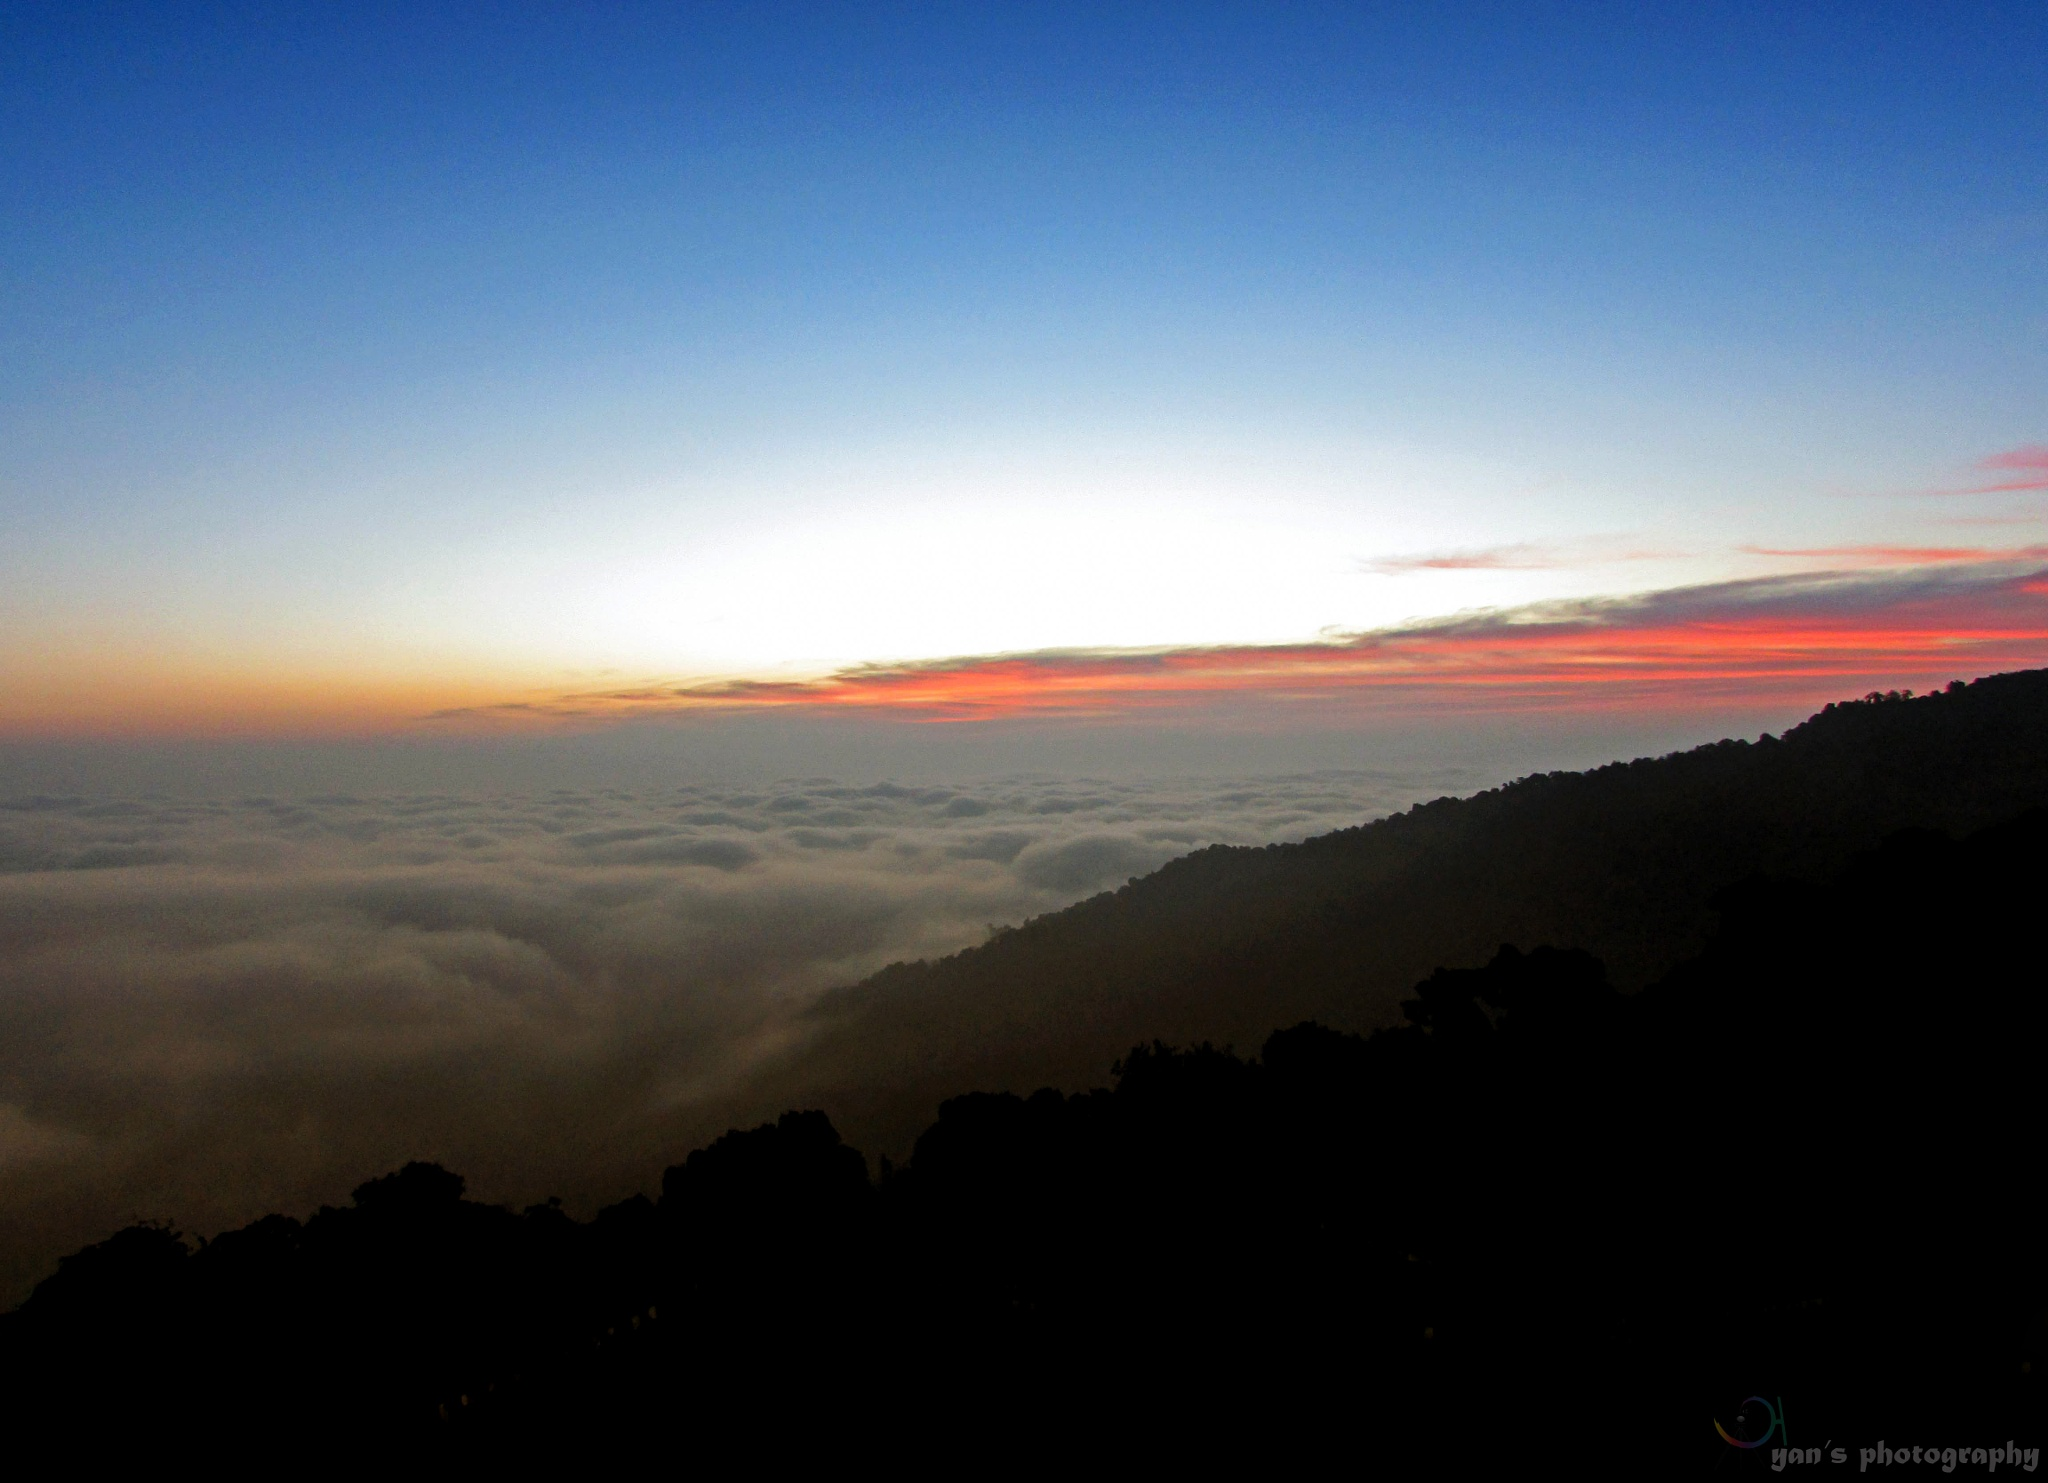 Just before the sunrise by Ayan Mazumder